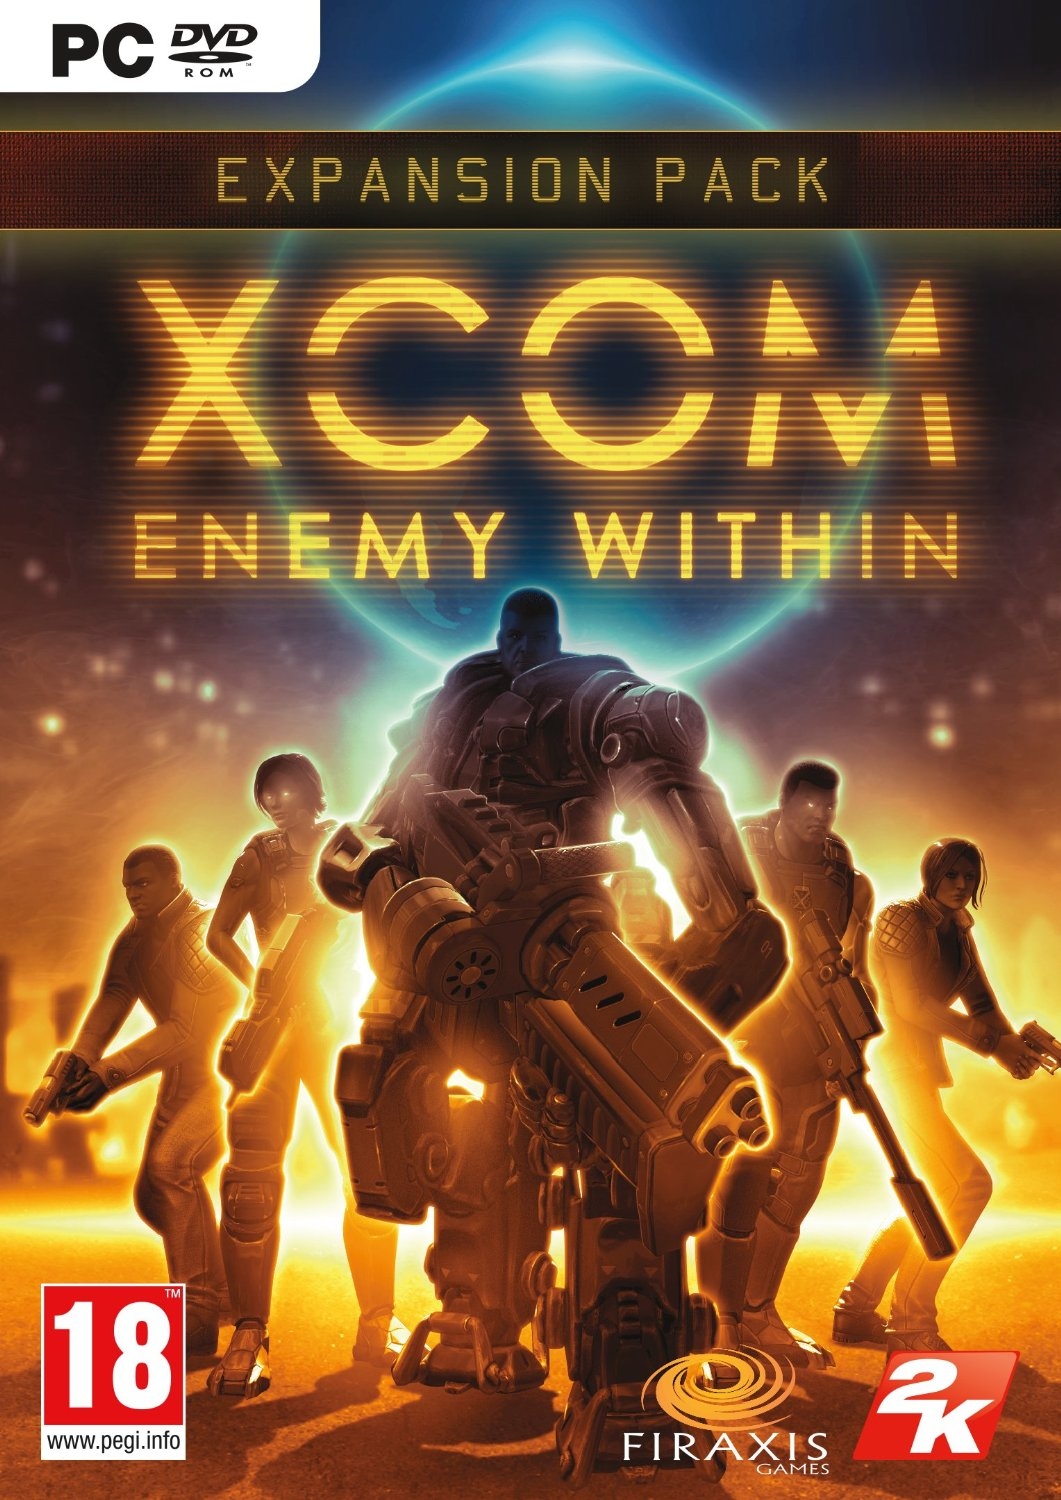 XCOM: Enemy Within Expansion pack clé pas chere